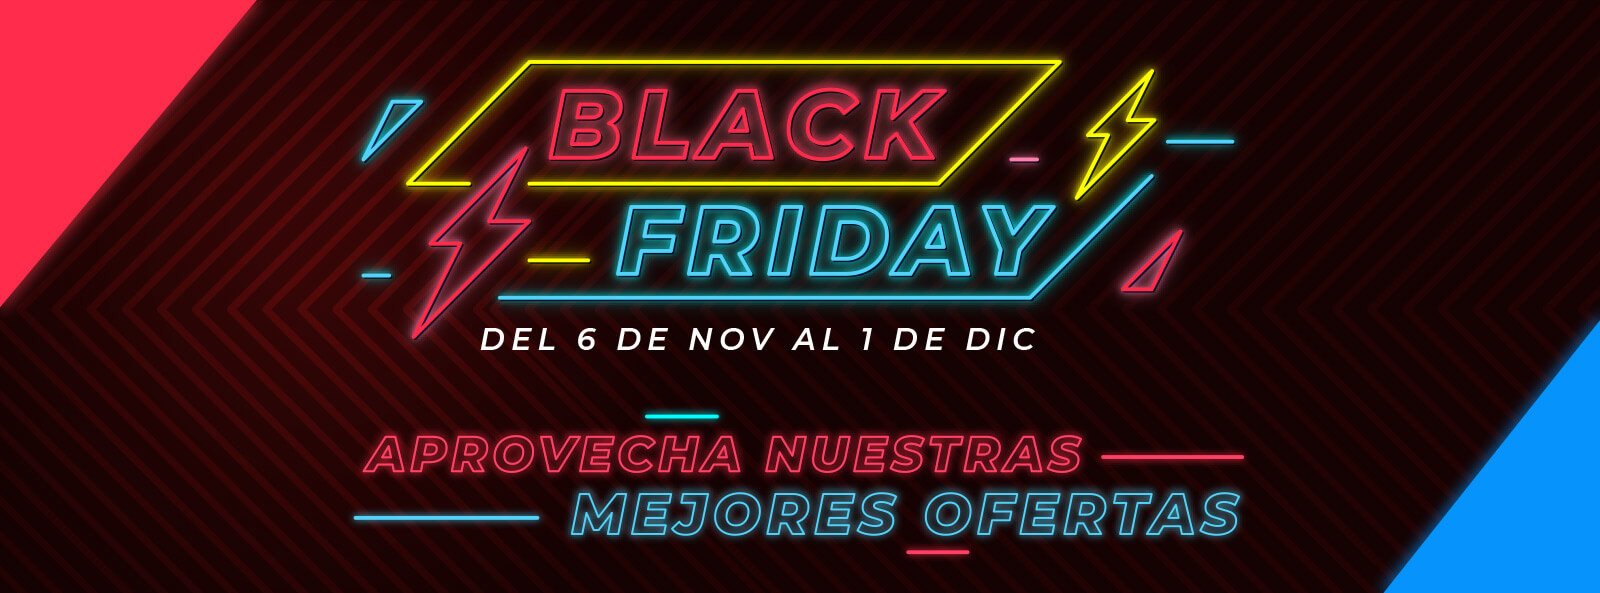 Black Friday Topmoviles